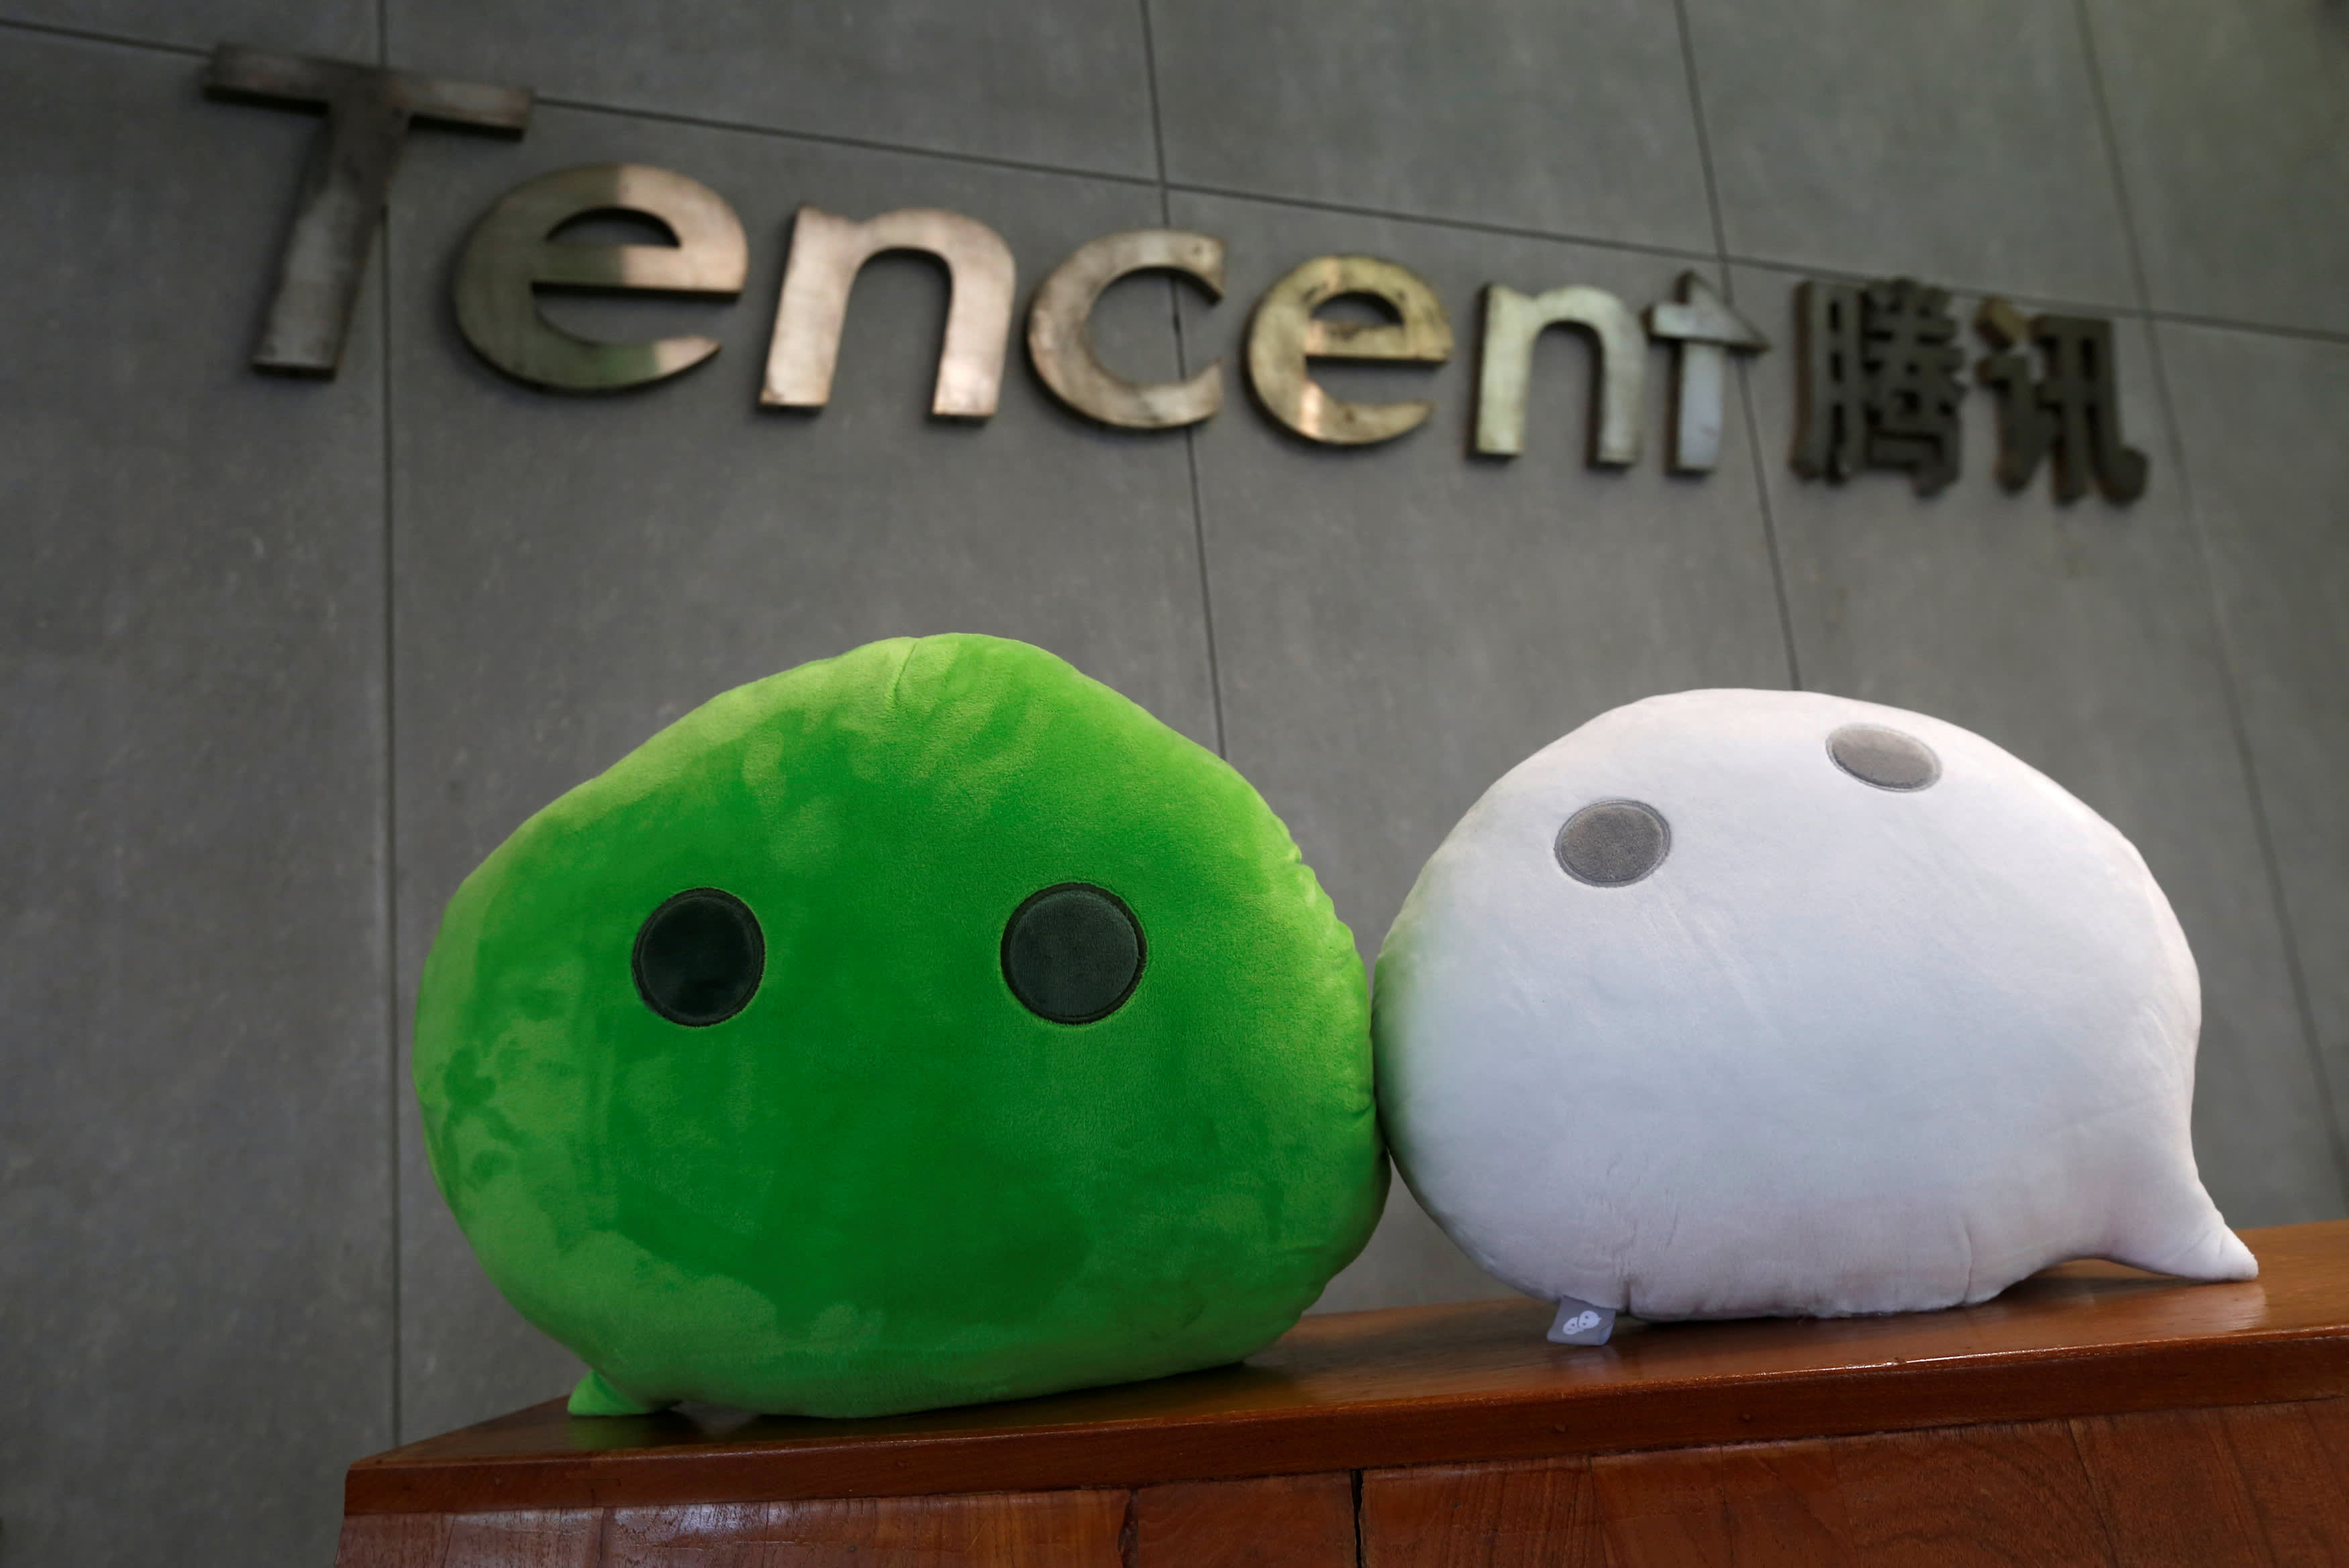 Tencent falls over 5% after hitting an all-time high that pushed it close to a $1 trillion valuation